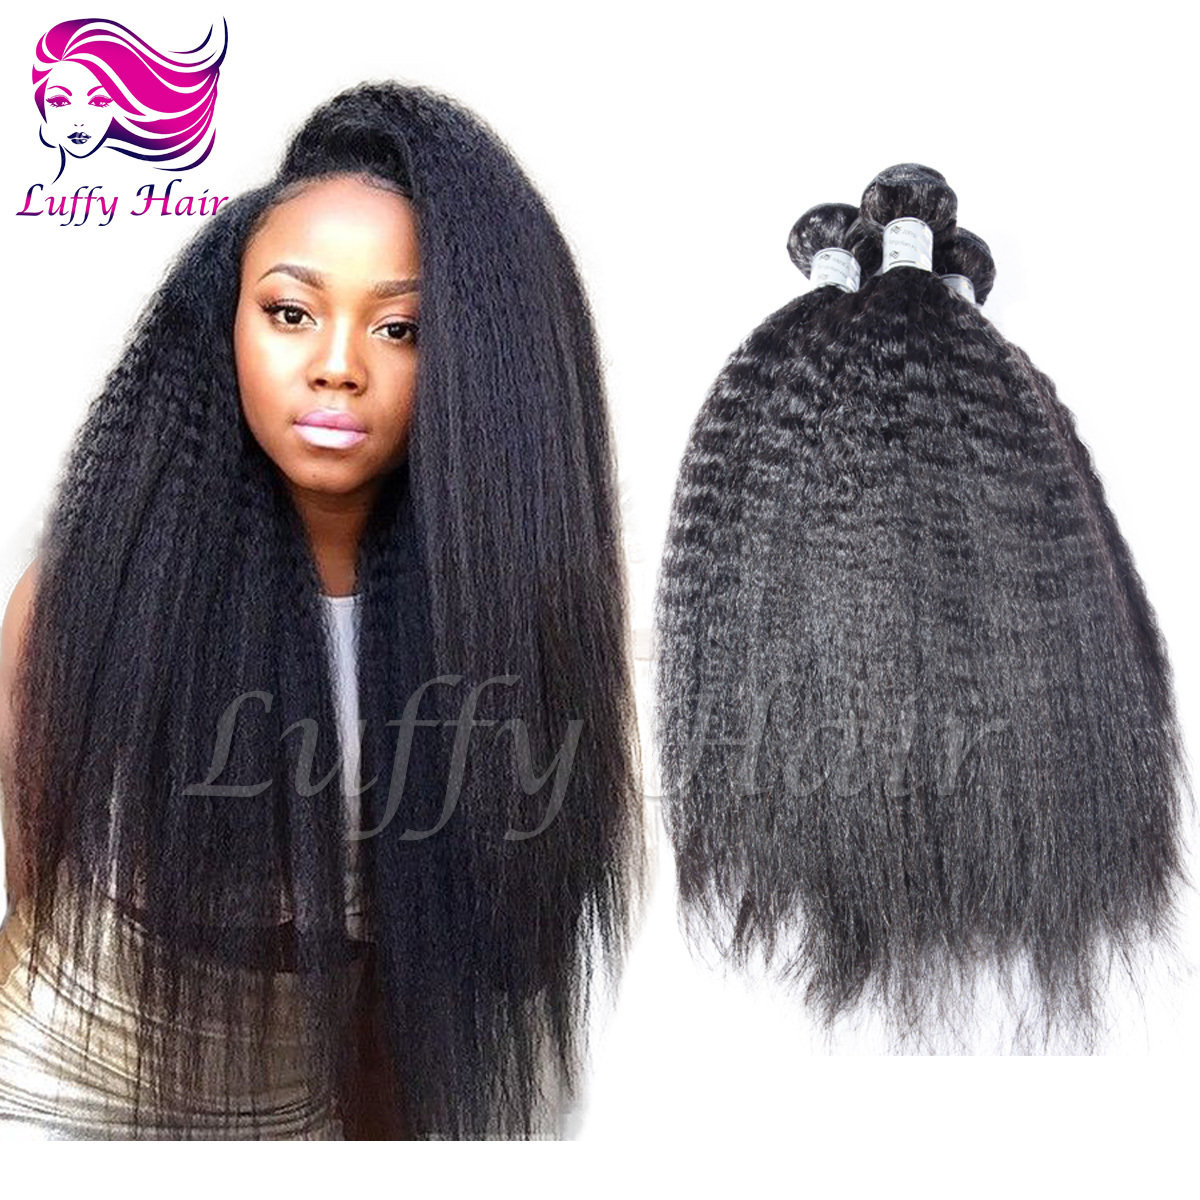 8A Virgin Human Hair Kinky Straight Hair Bundle - KEL013